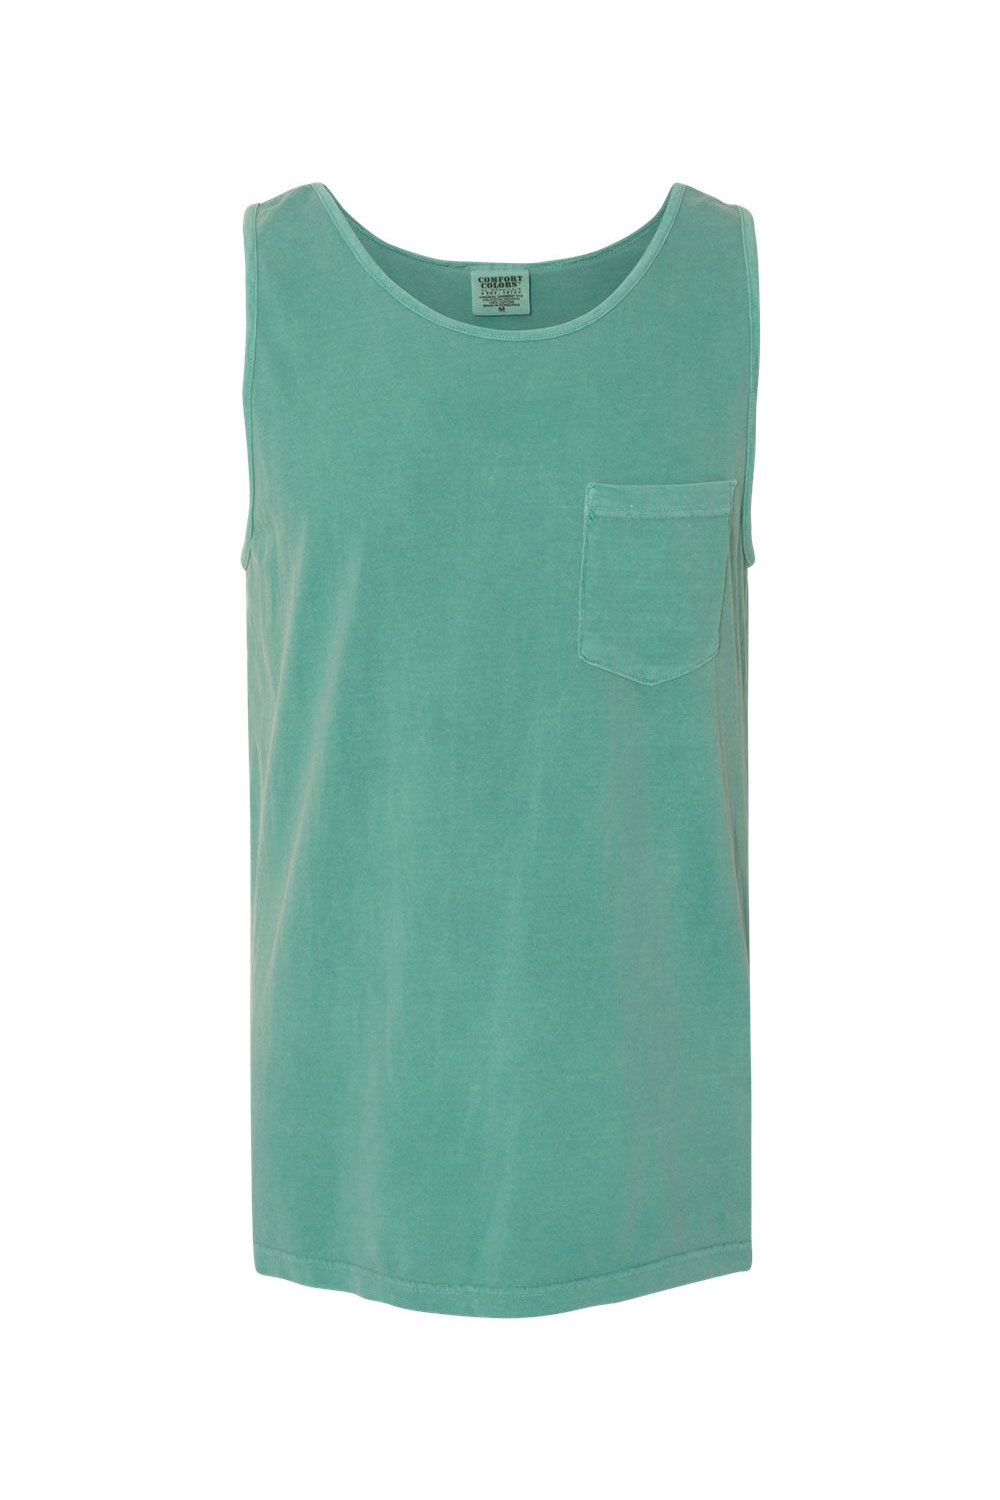 Comfort Colors Adult Tank Top with Pocket